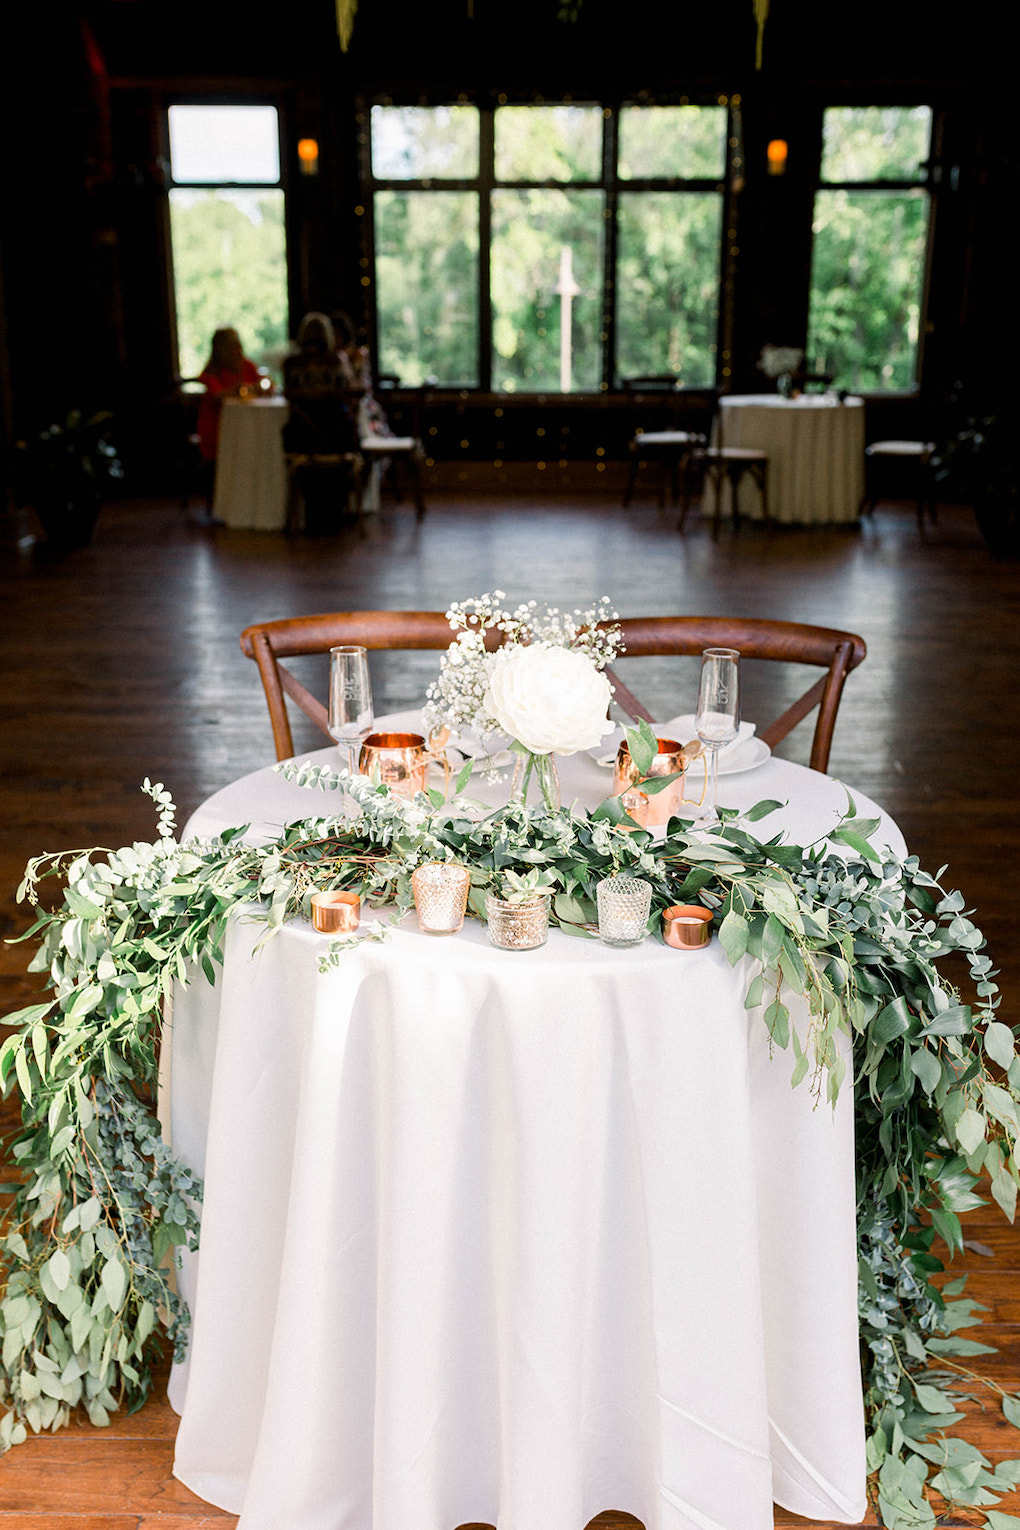 Garden sweetheart table ideas: Pittsburgh Botanic Garden wedding planned by Exhale Events. See more wedding inspiration at exhale-events.com!